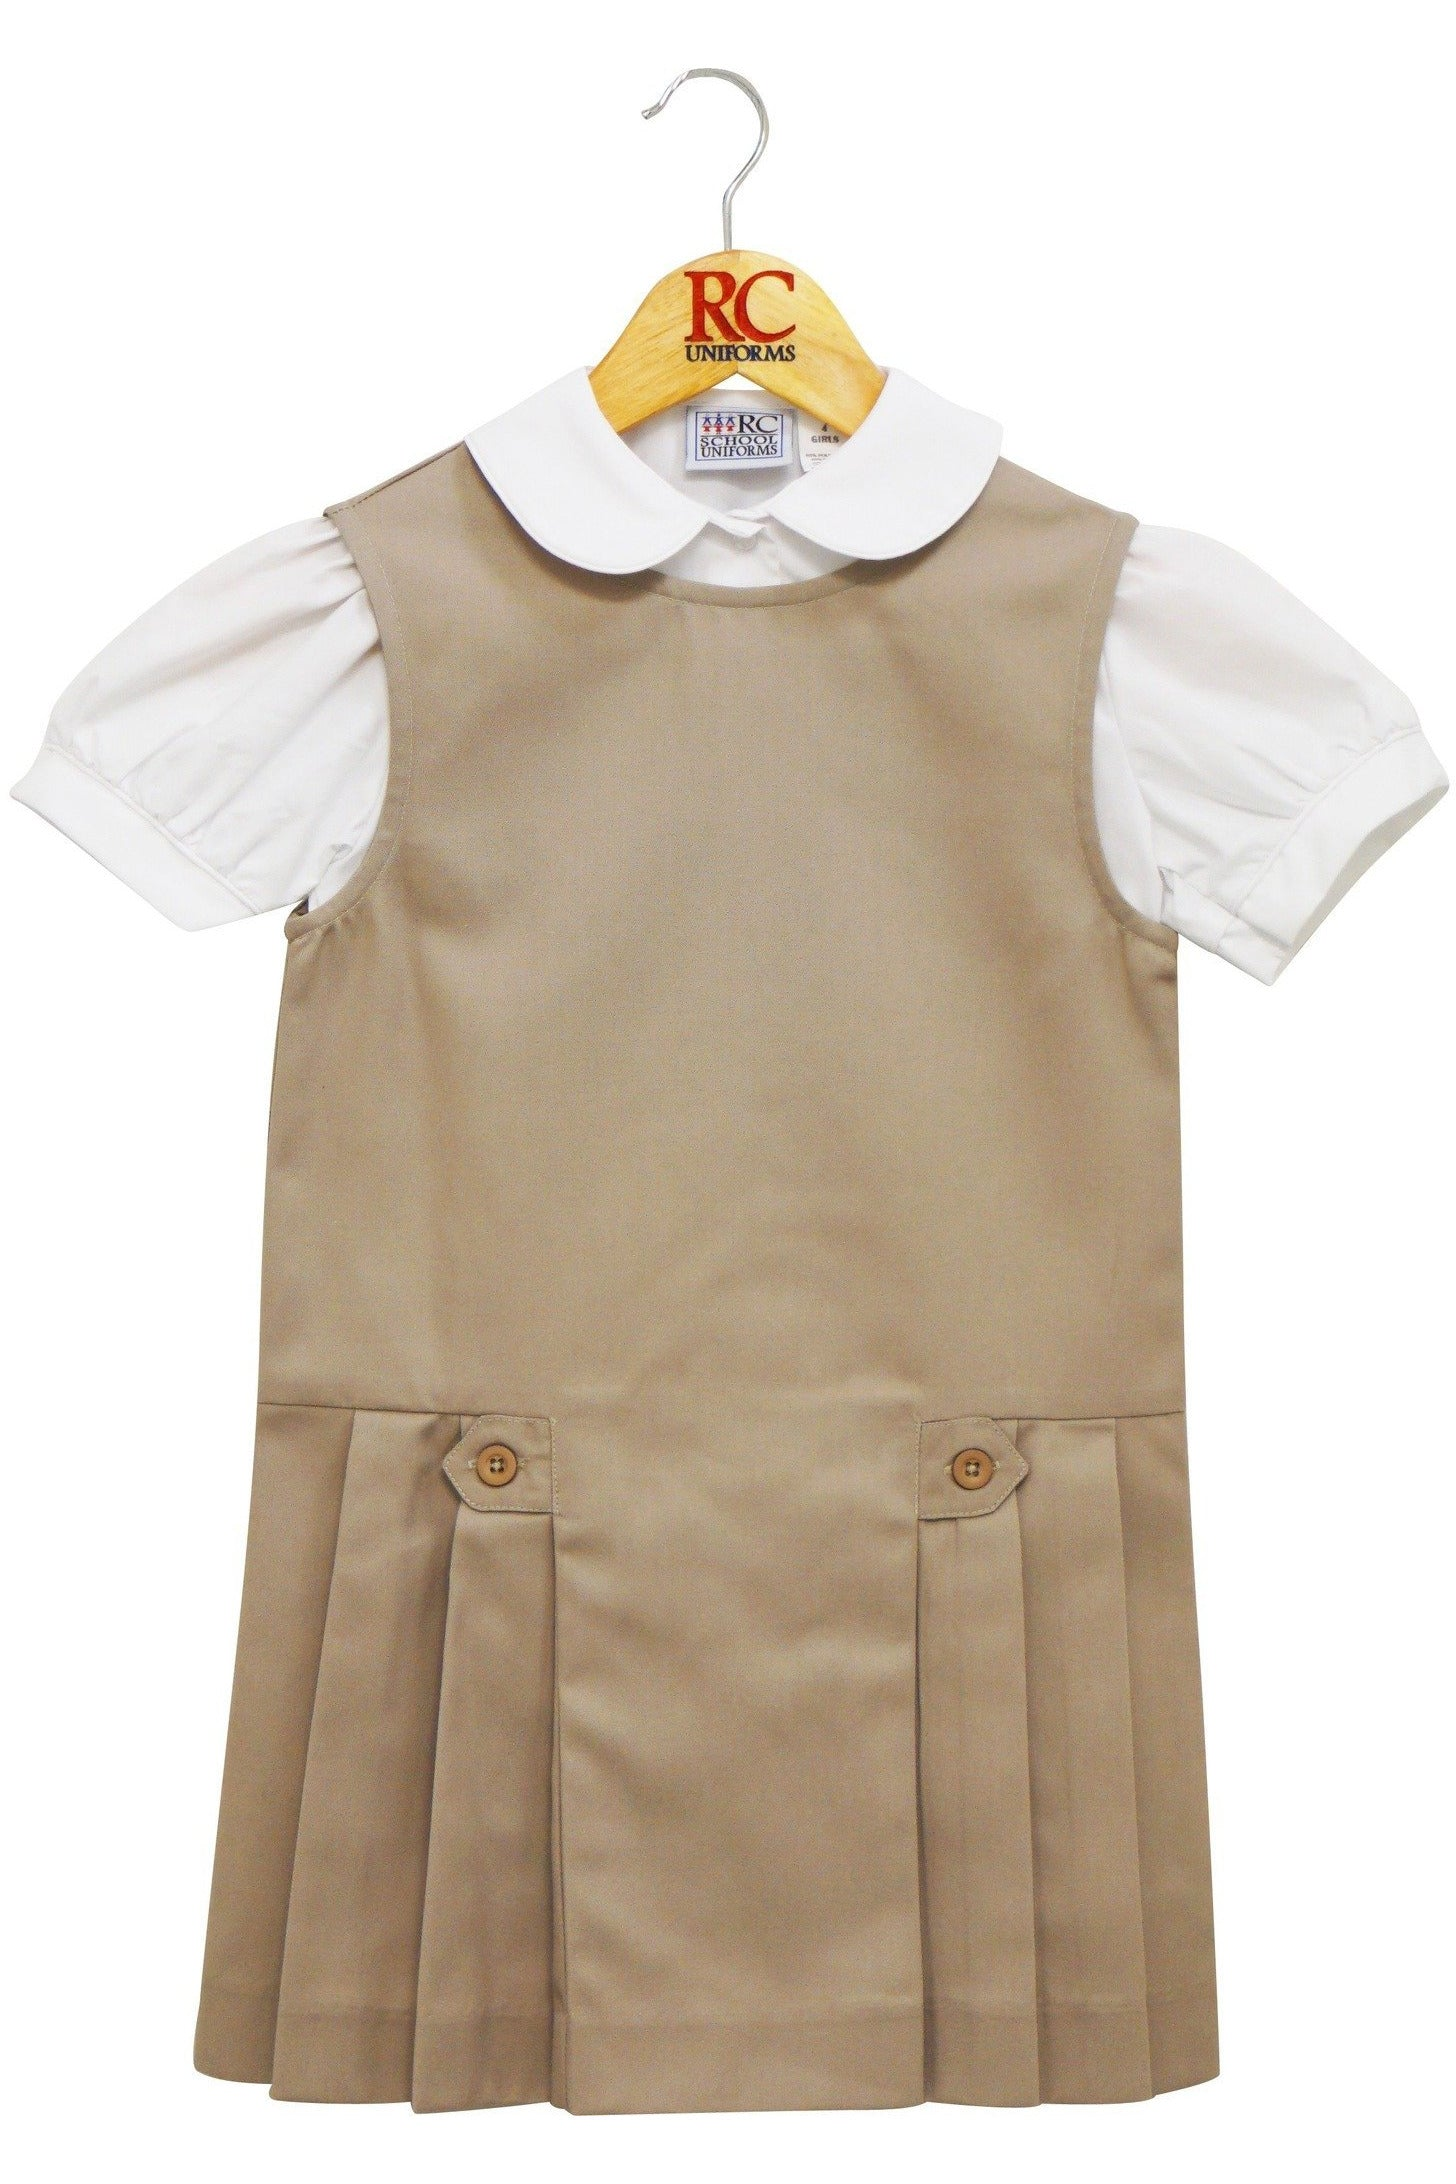 K-12 Gear Khaki Jumper - RC Uniforms